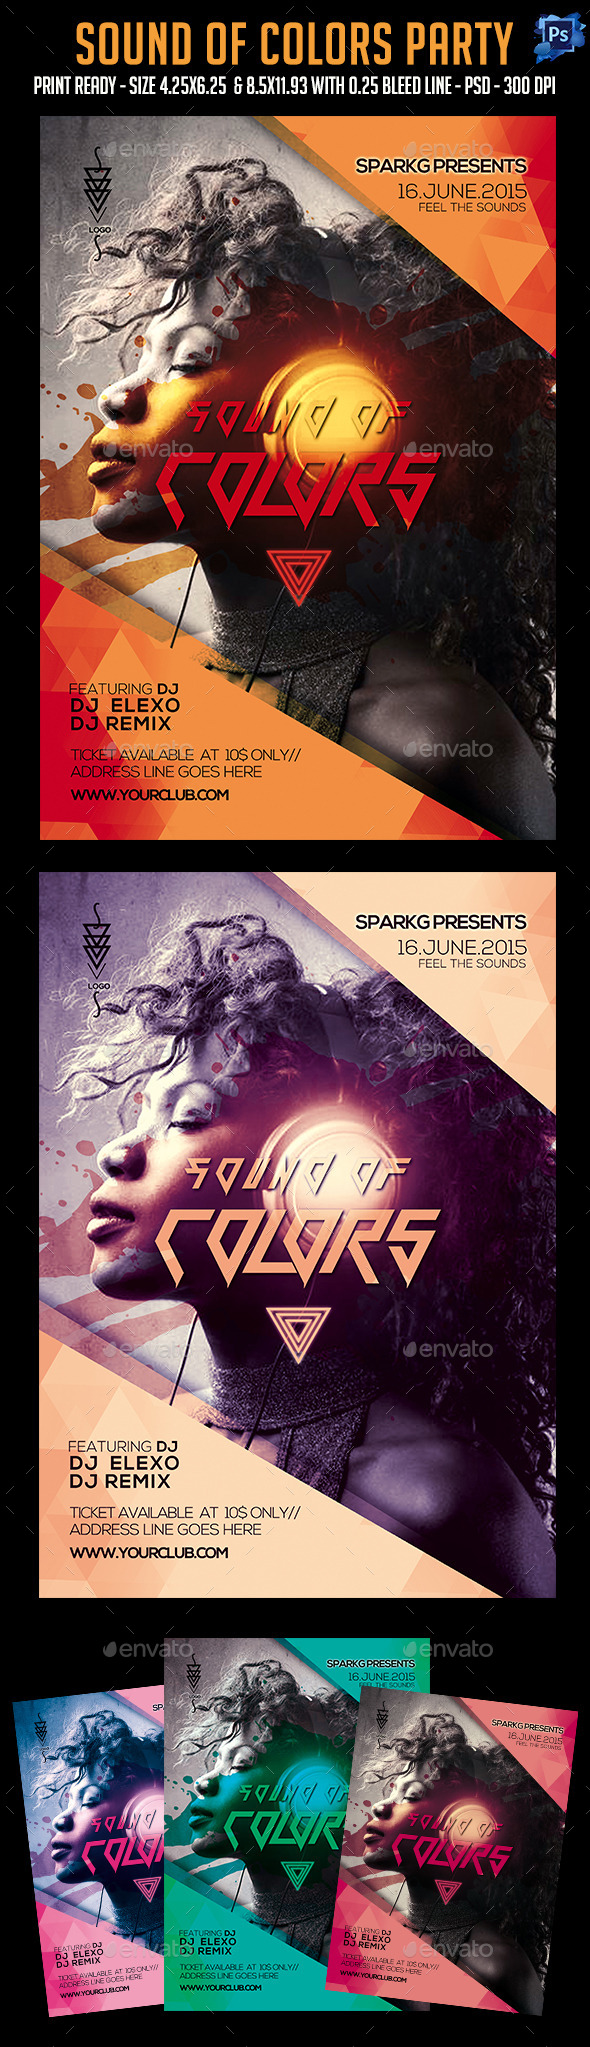 Sound Of Color Party Flyer - Clubs & Parties Events